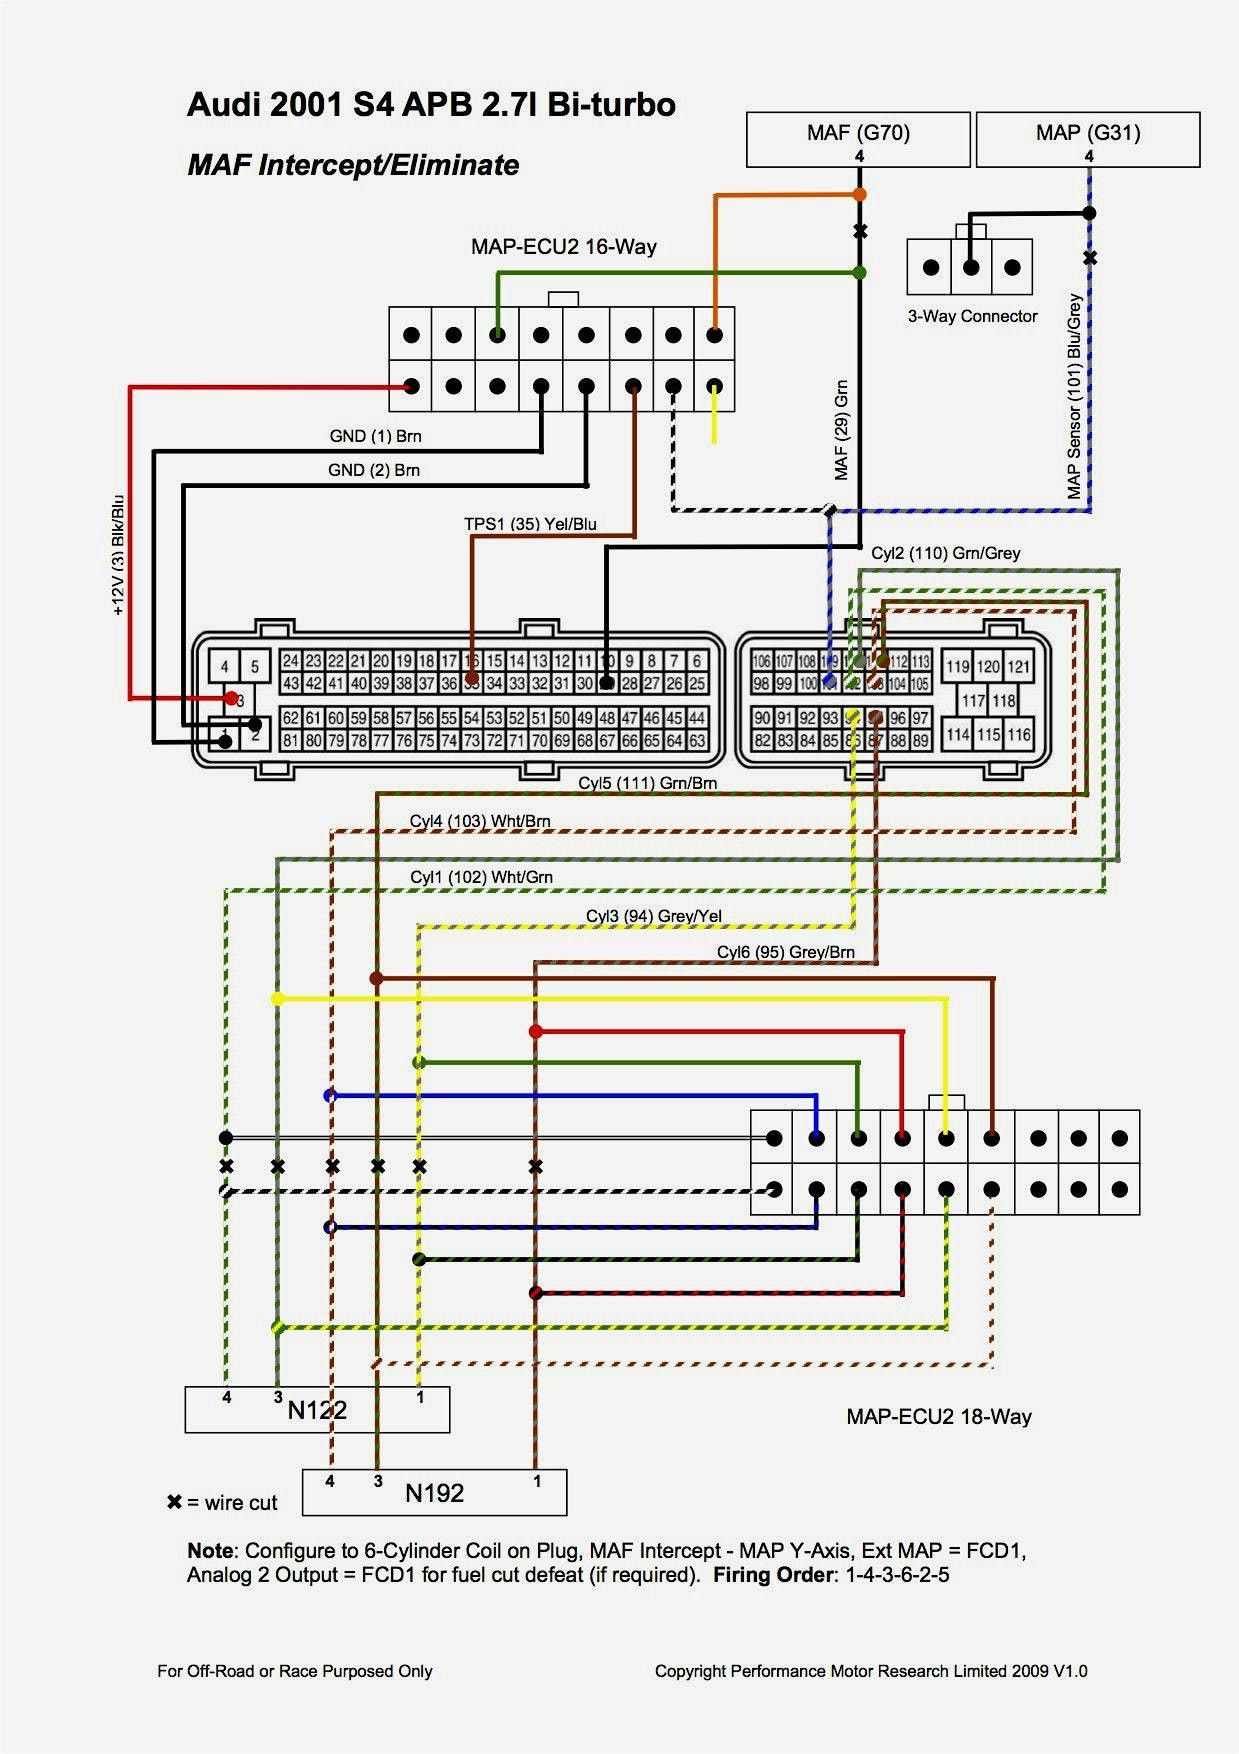 1996 Audi A4 Stereo Wiring Wiring Diagram Brief Warehouse Brief Warehouse Pasticceriagele It